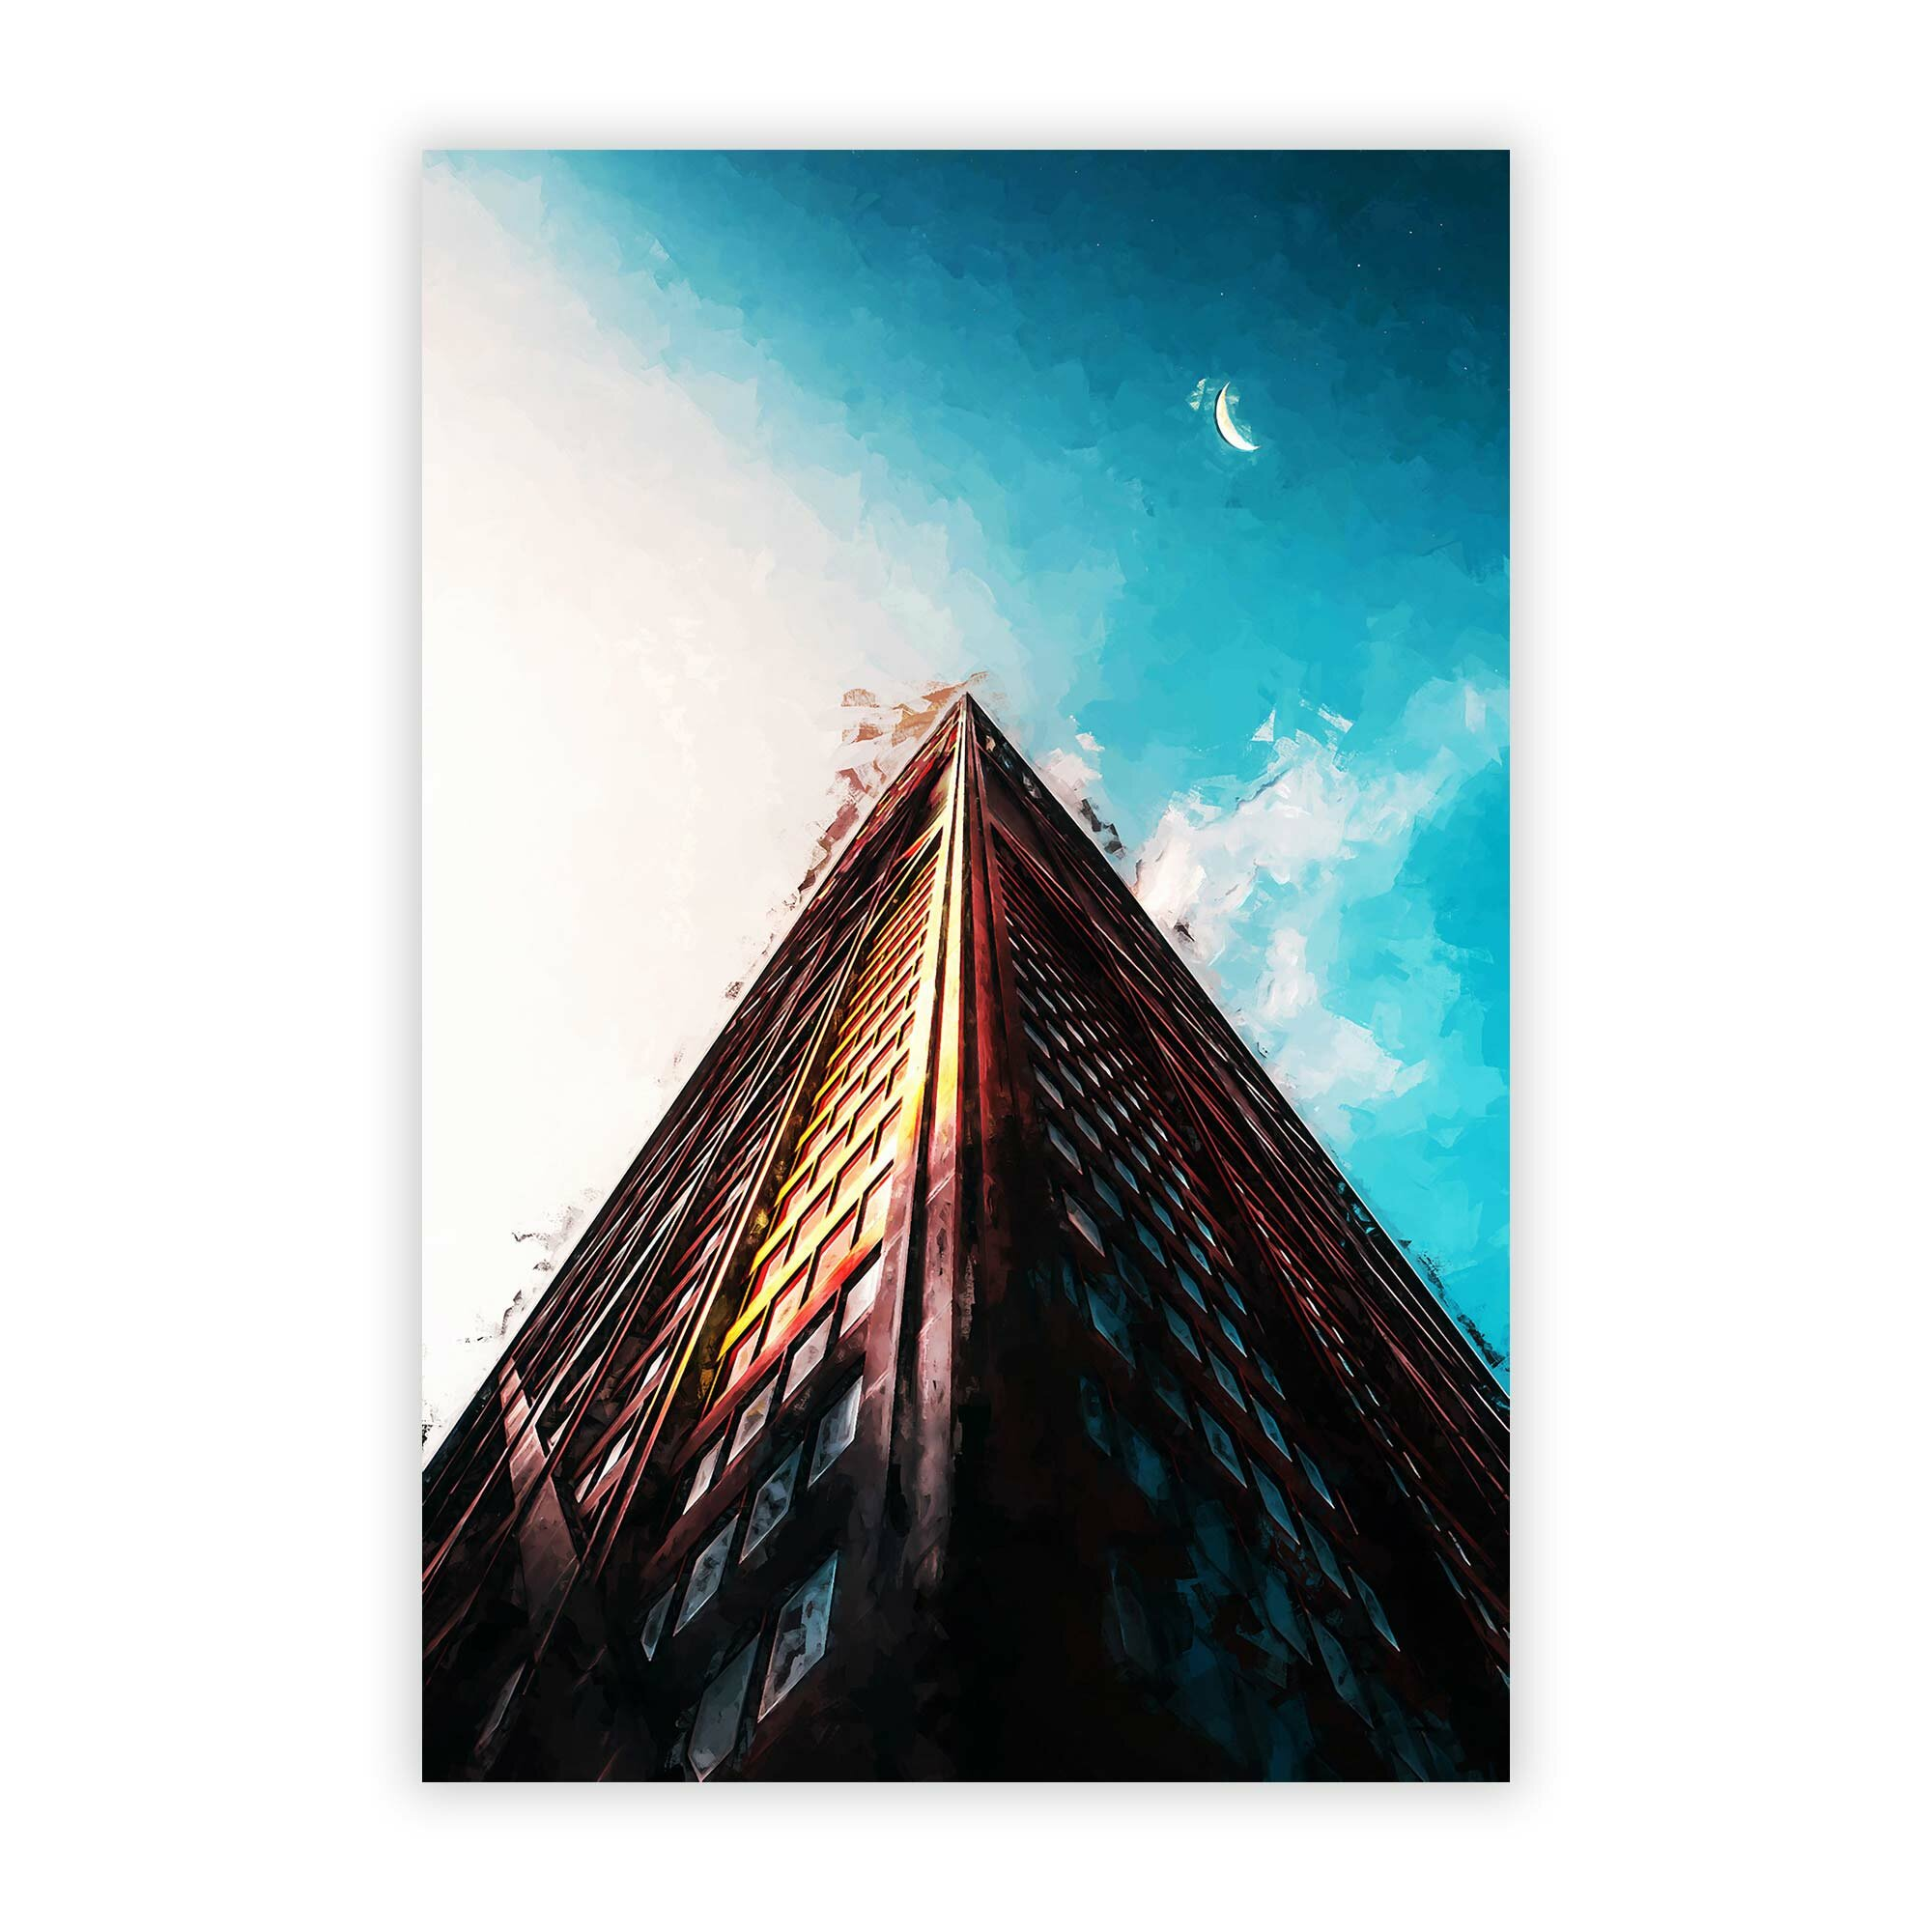 Big Box Art Moon Above The Architecture Unframed Graphic Art Print On Paper Wayfair Co Uk